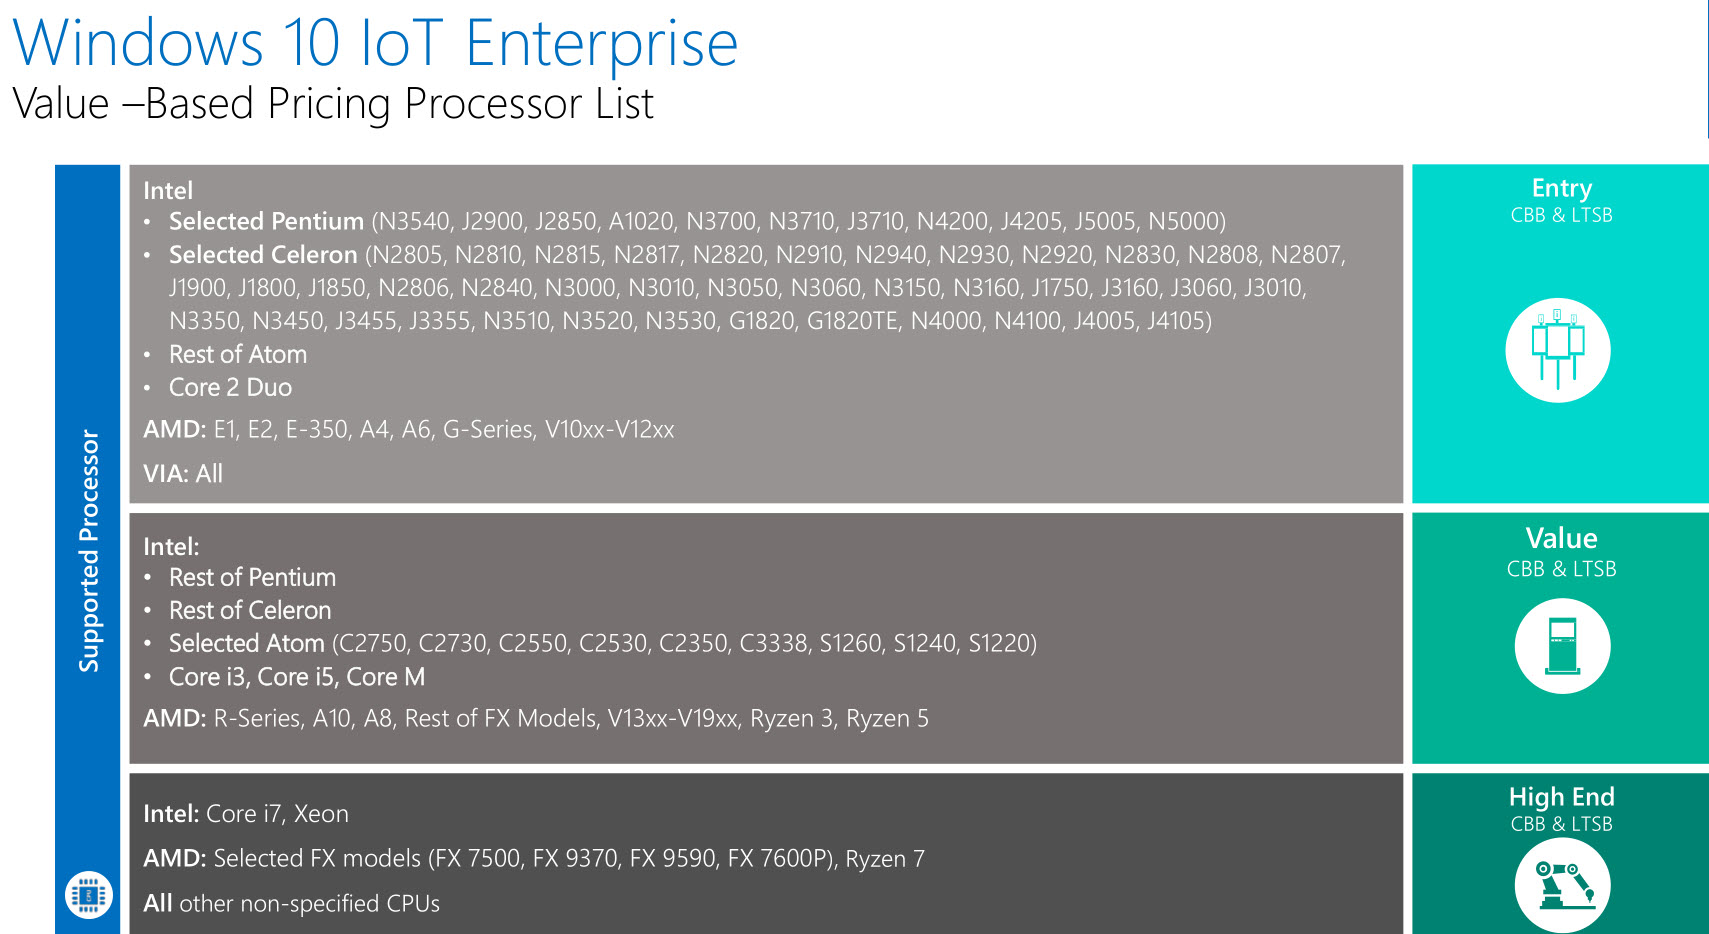 WIndows 10 IoT Enterprise pricing is based on CPU